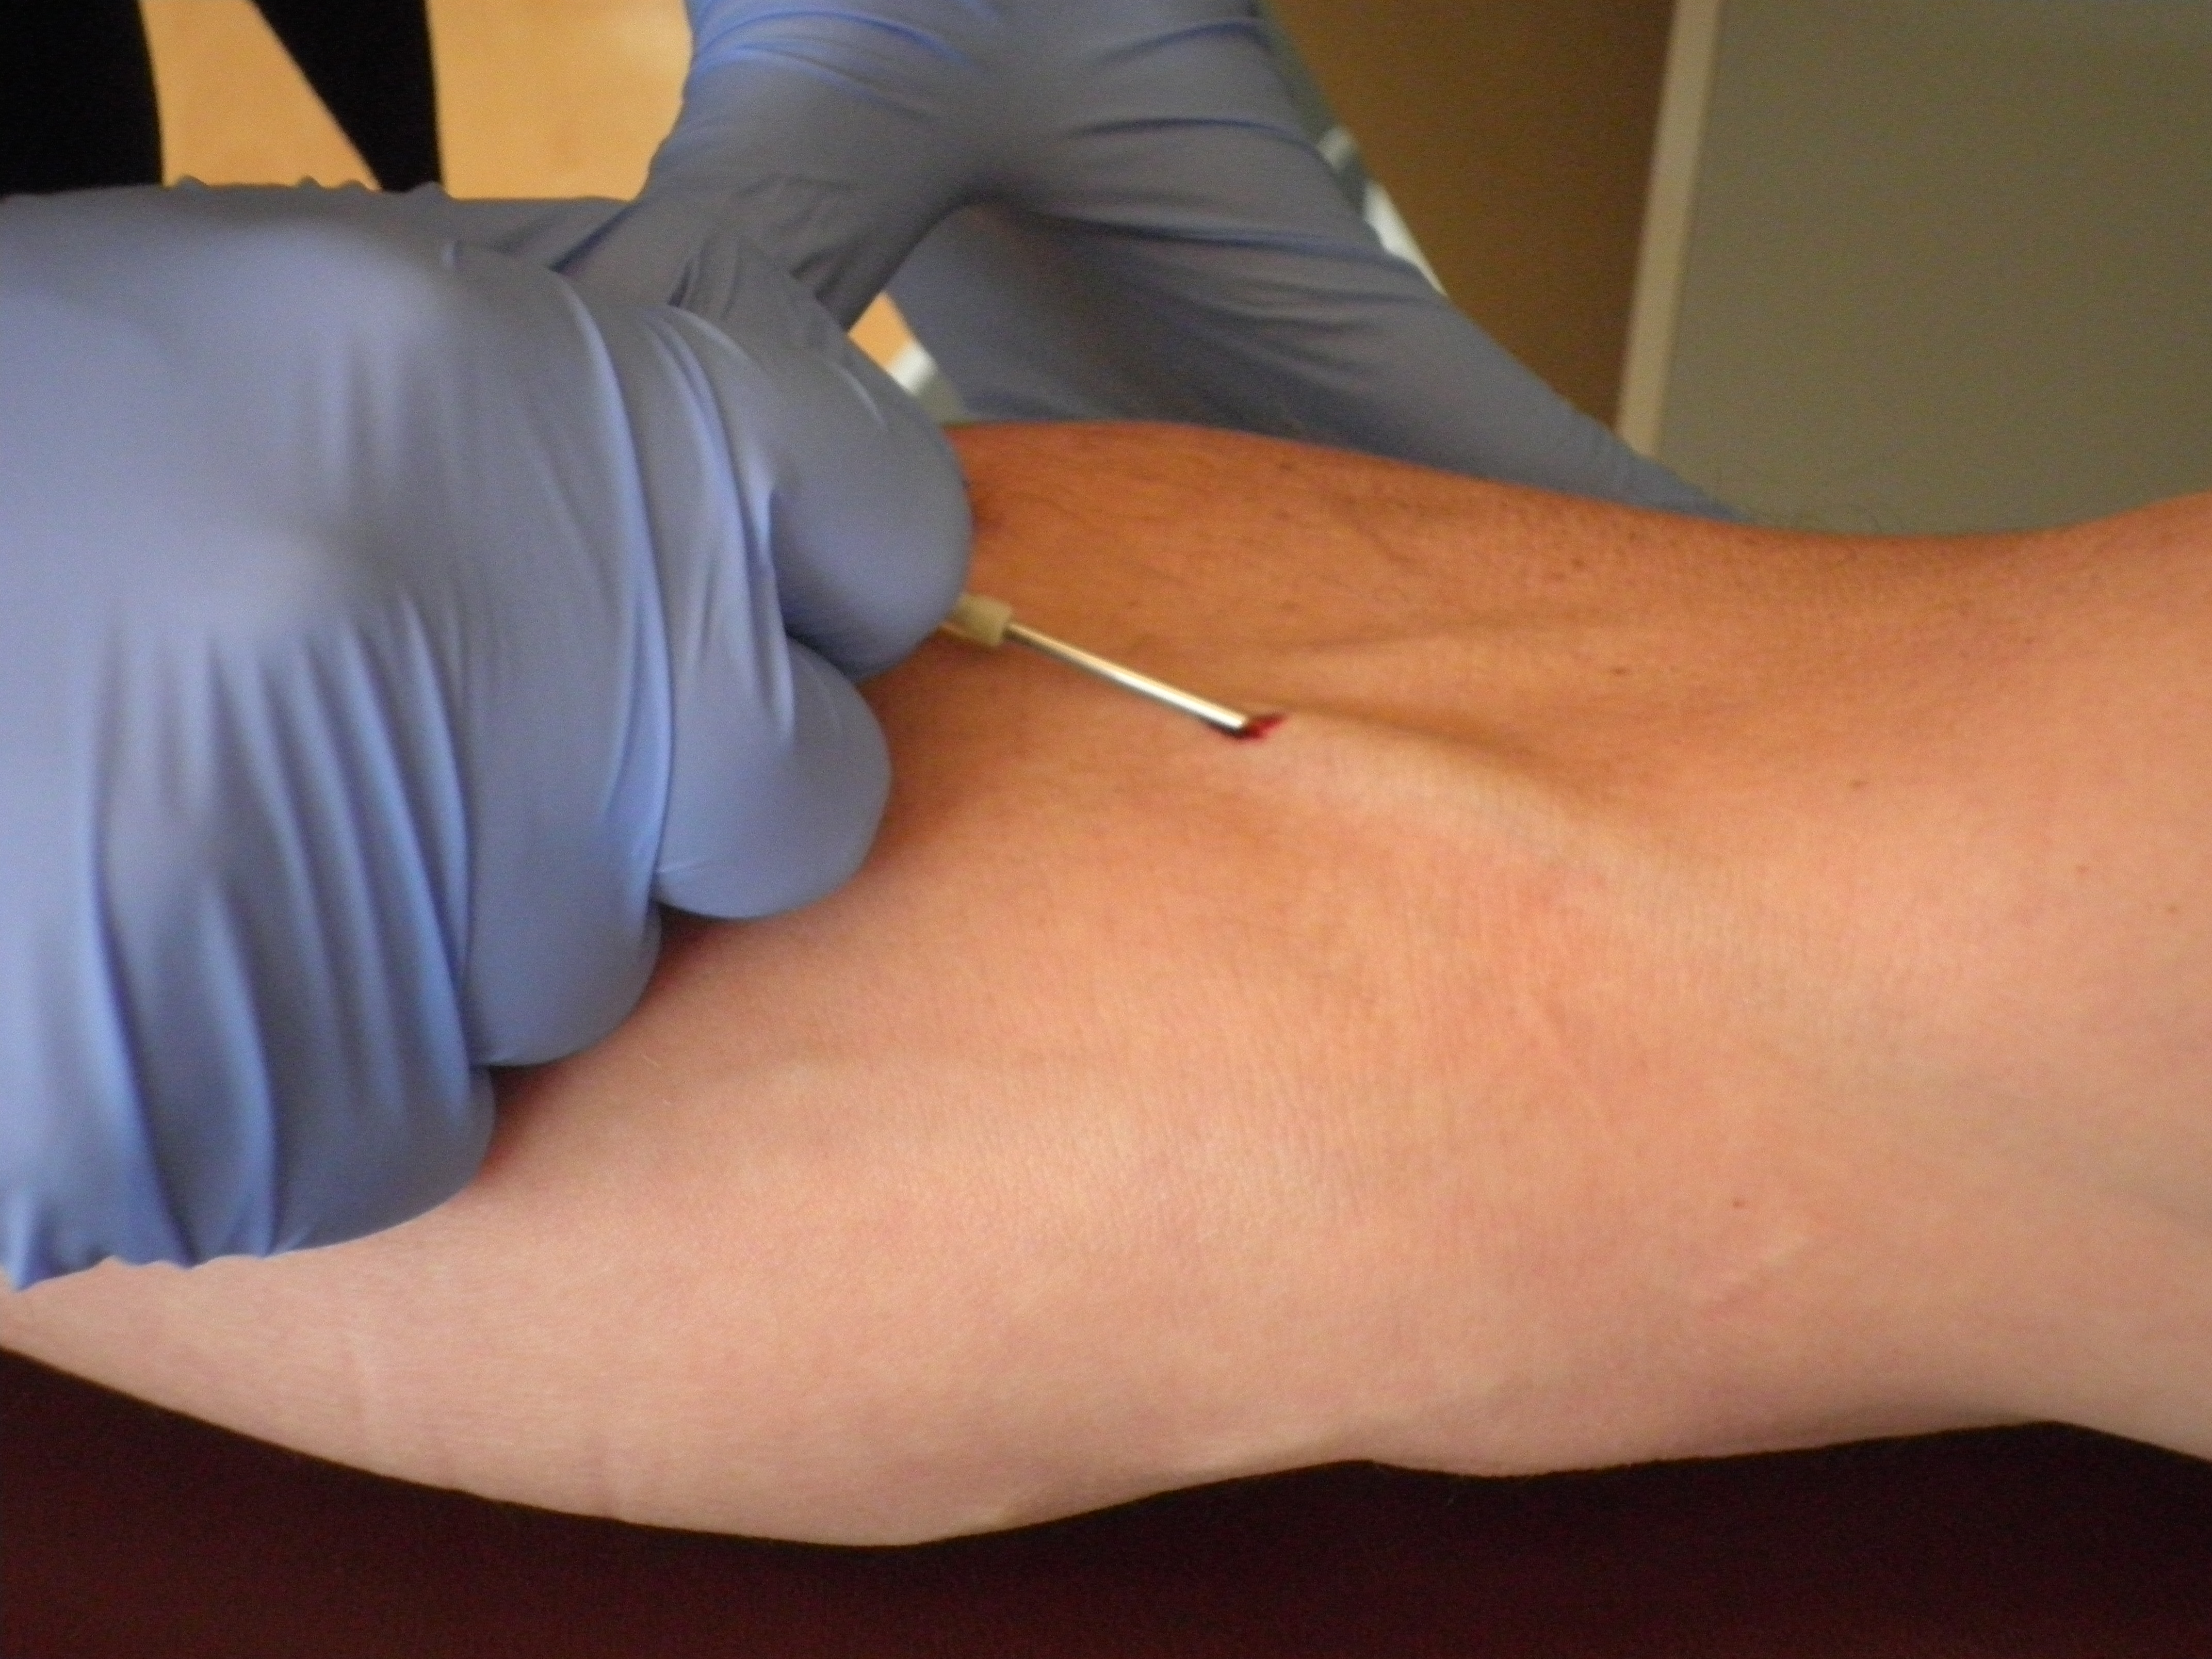 Giving Plasma Needle Pictures To Pin On Pinterest